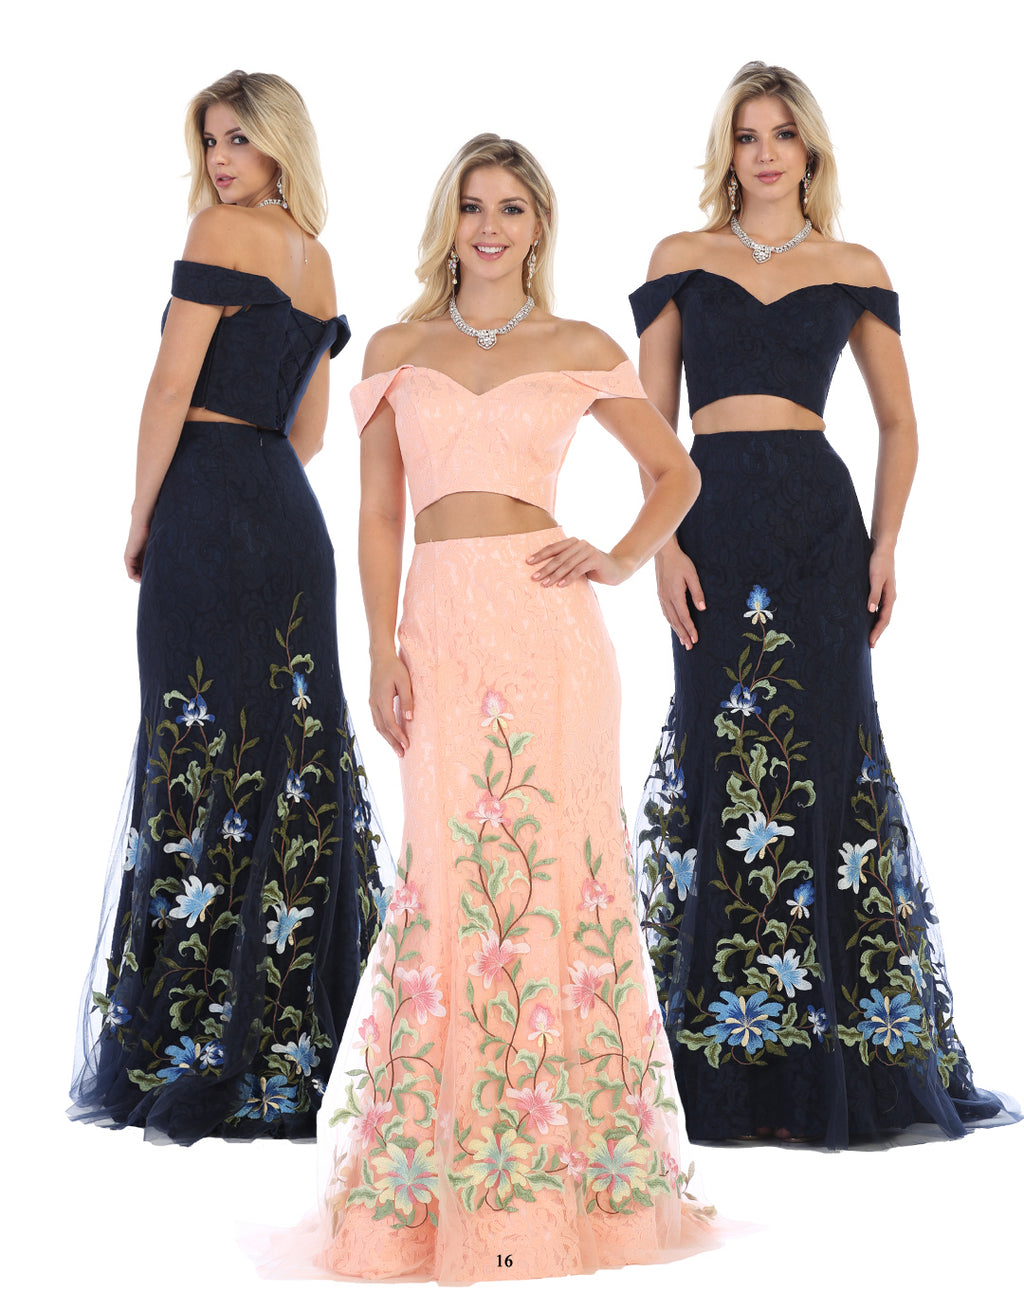 Sexy Floral Lace Embroidered Two Piece Off Shoulder Dress | Norma Reed